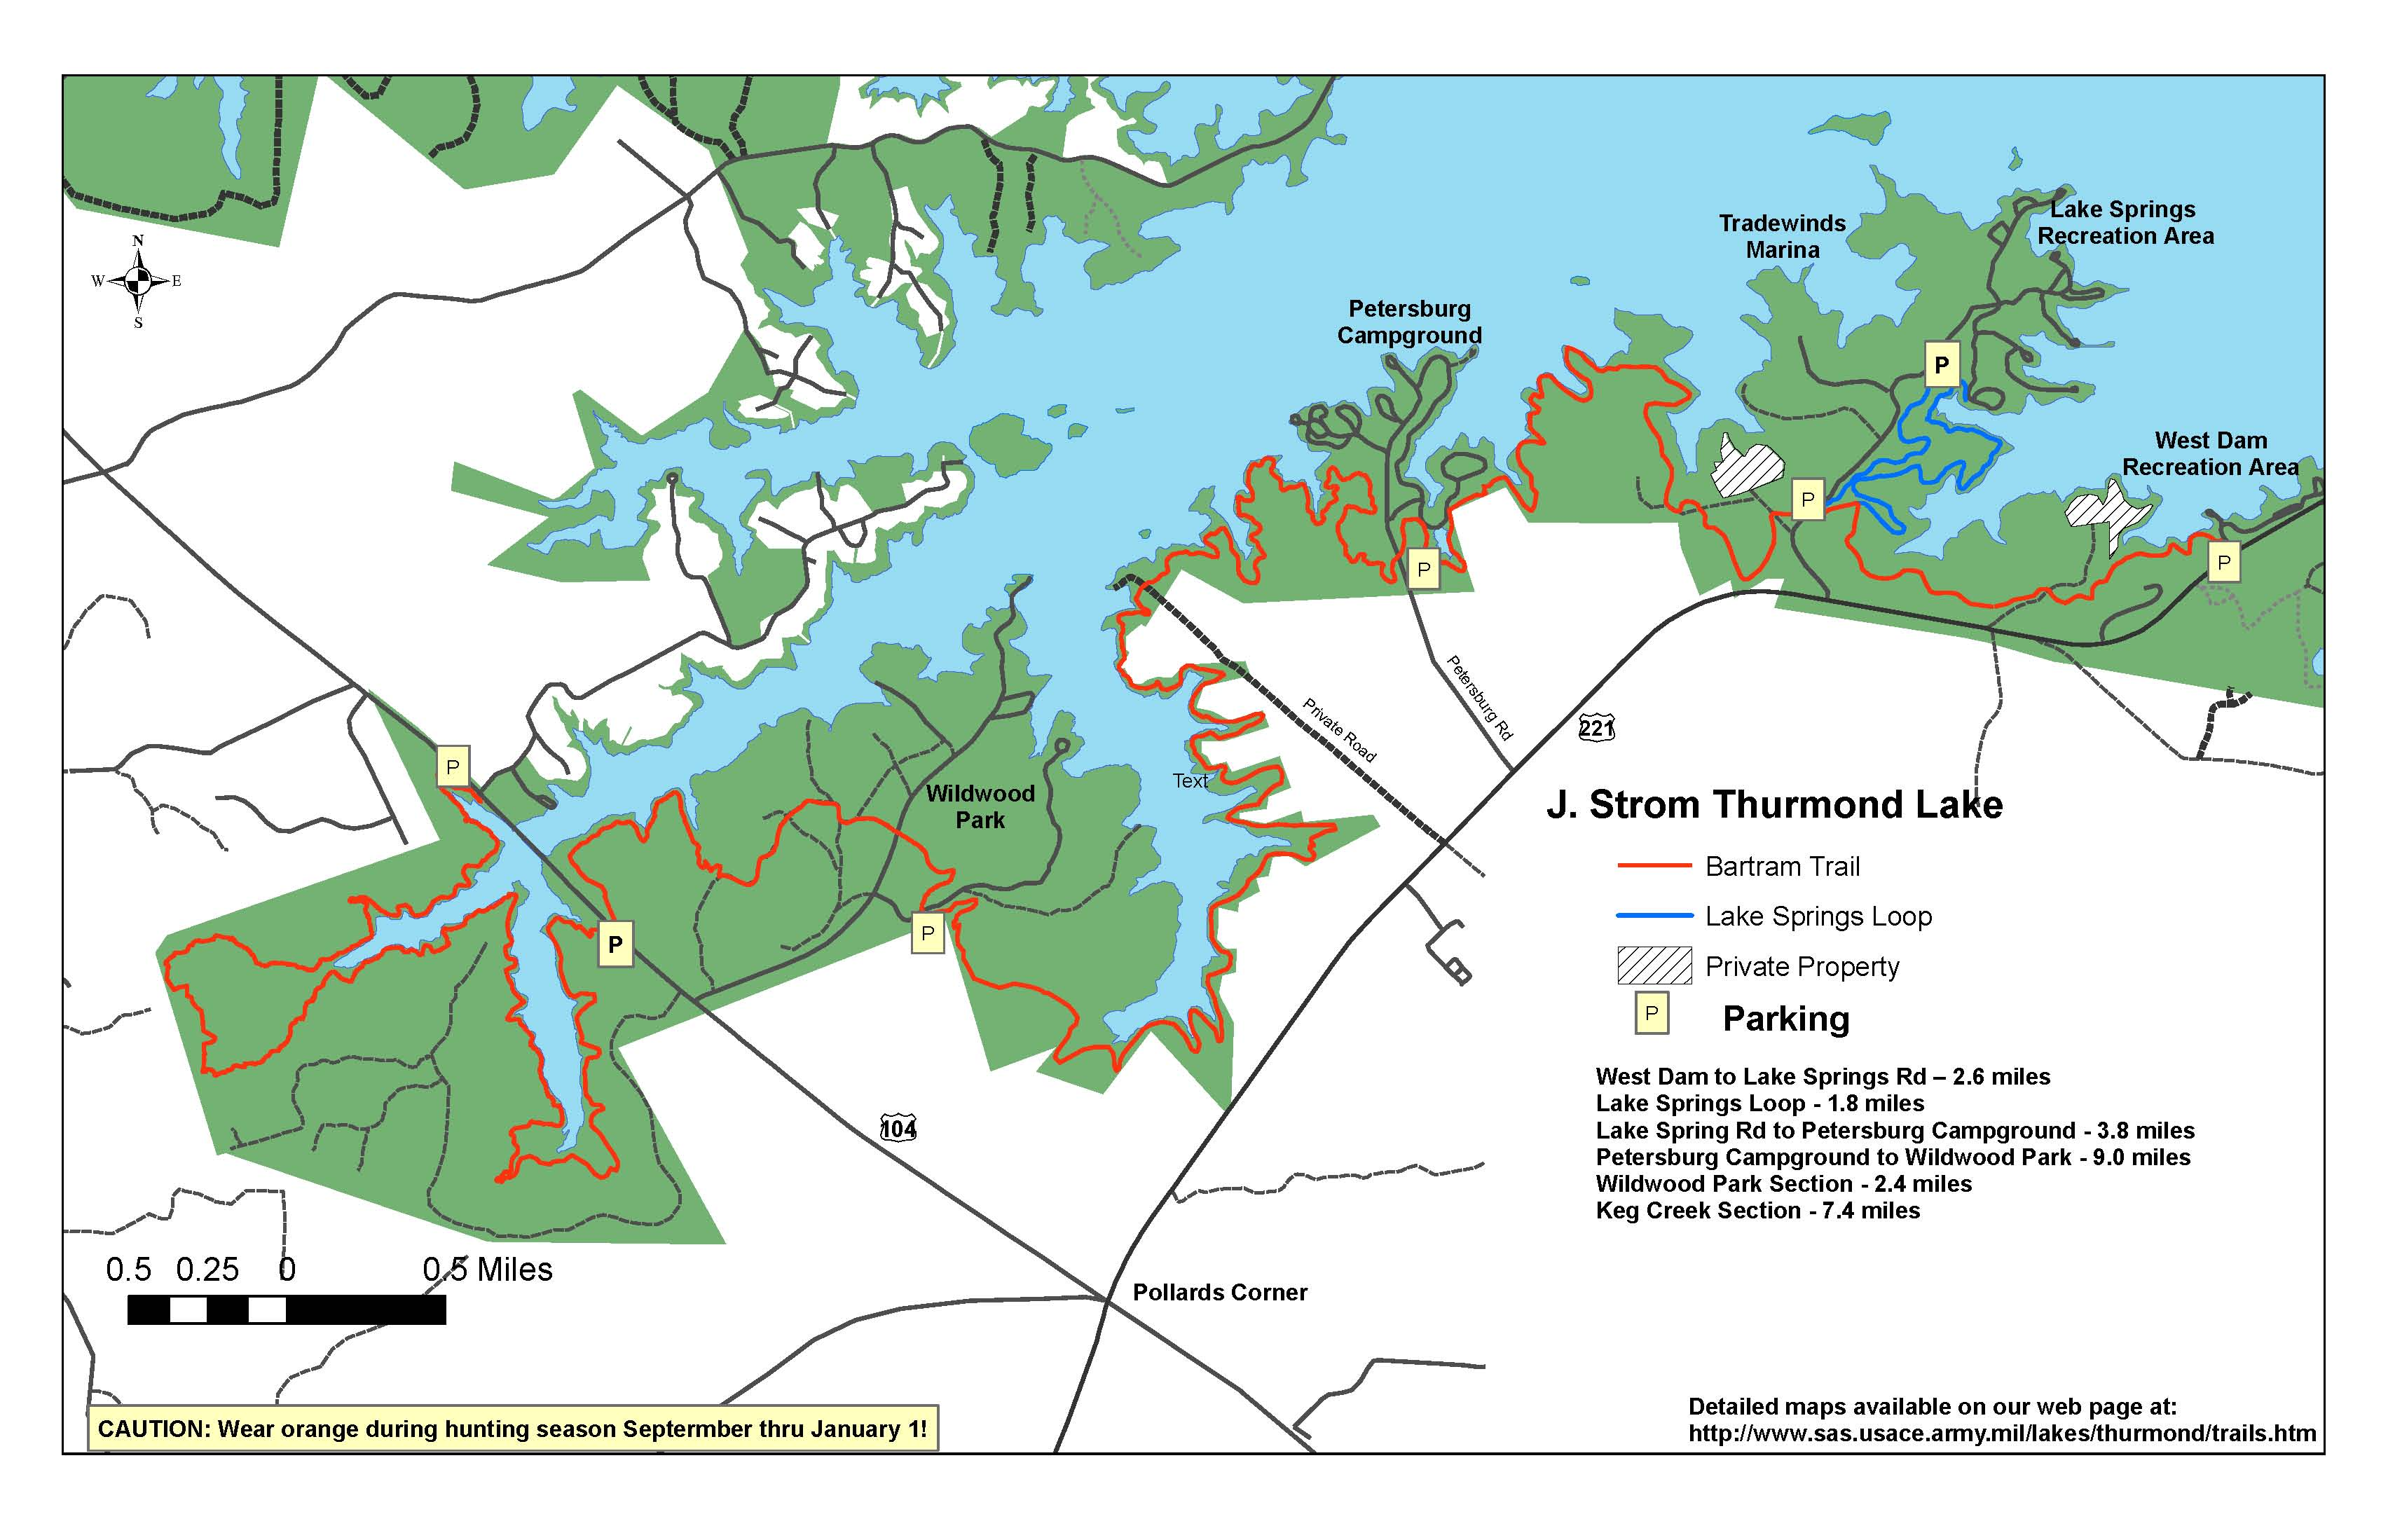 Savannah District > About > Divisions and Offices ... on columbia river on us map, susquehanna river on a us map, platte river on a us map, james river on a us map, tennessee river on a us map, potomac river on a us map, arkansas river on a us map, missouri river on a us map, savannah river site map, delaware river on a us map, sabine river on a us map, red river on us map, minnesota river on a us map, hudson river on a us map, rappahannock river on a us map, willamette river on a us map, sacramento river on a us map, mississippi river on a us map, cumberland river on a us map, suwannee river on a us map,